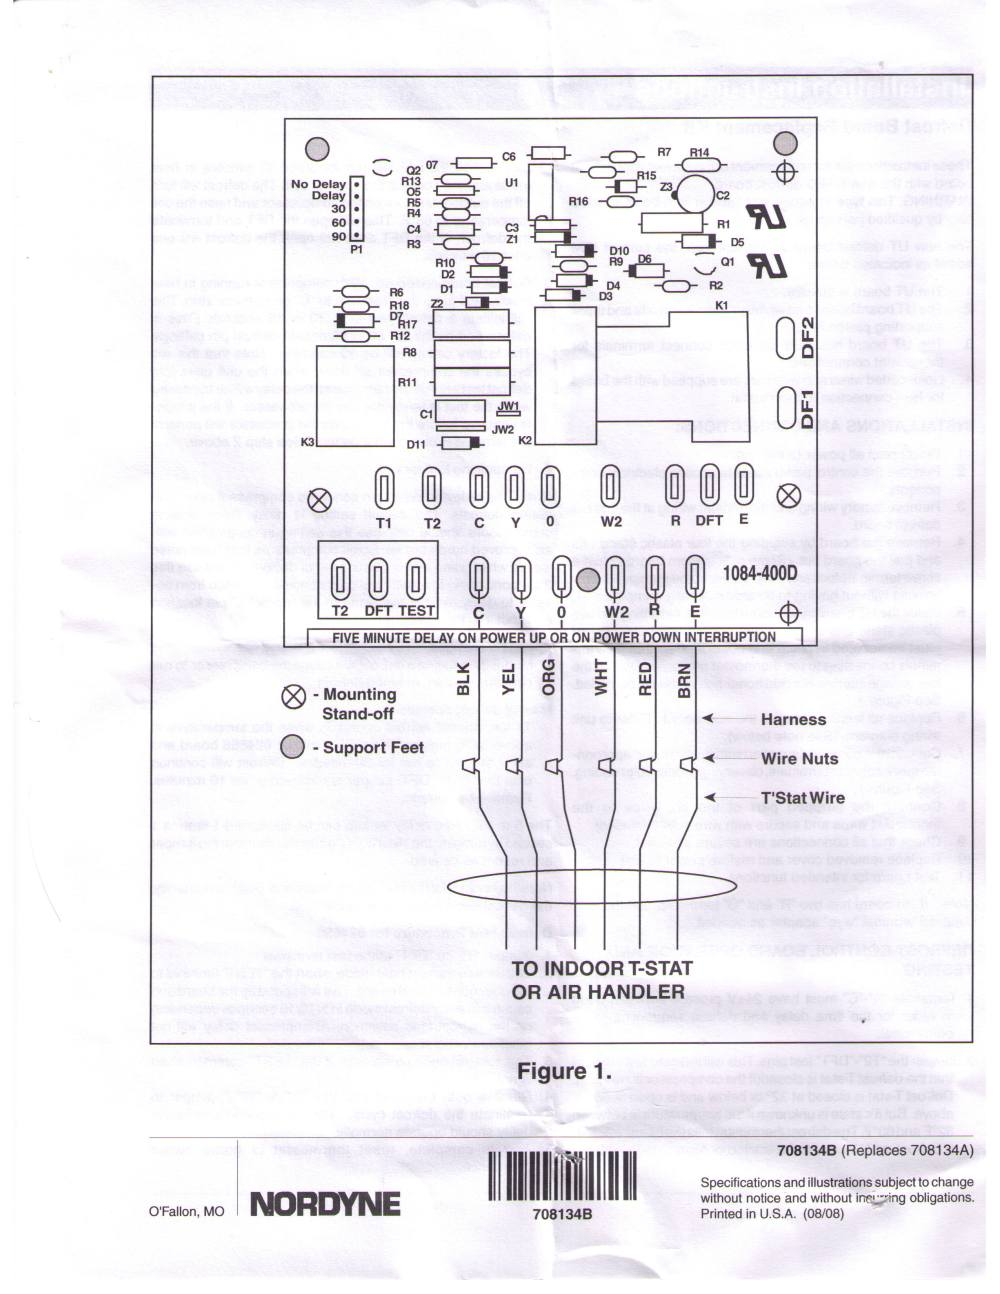 medium resolution of nordyne condenser wiring diagram 32 wiring diagram electric furnace wiring diagrams e2eb 015hb nordyne furnace wiring diagram